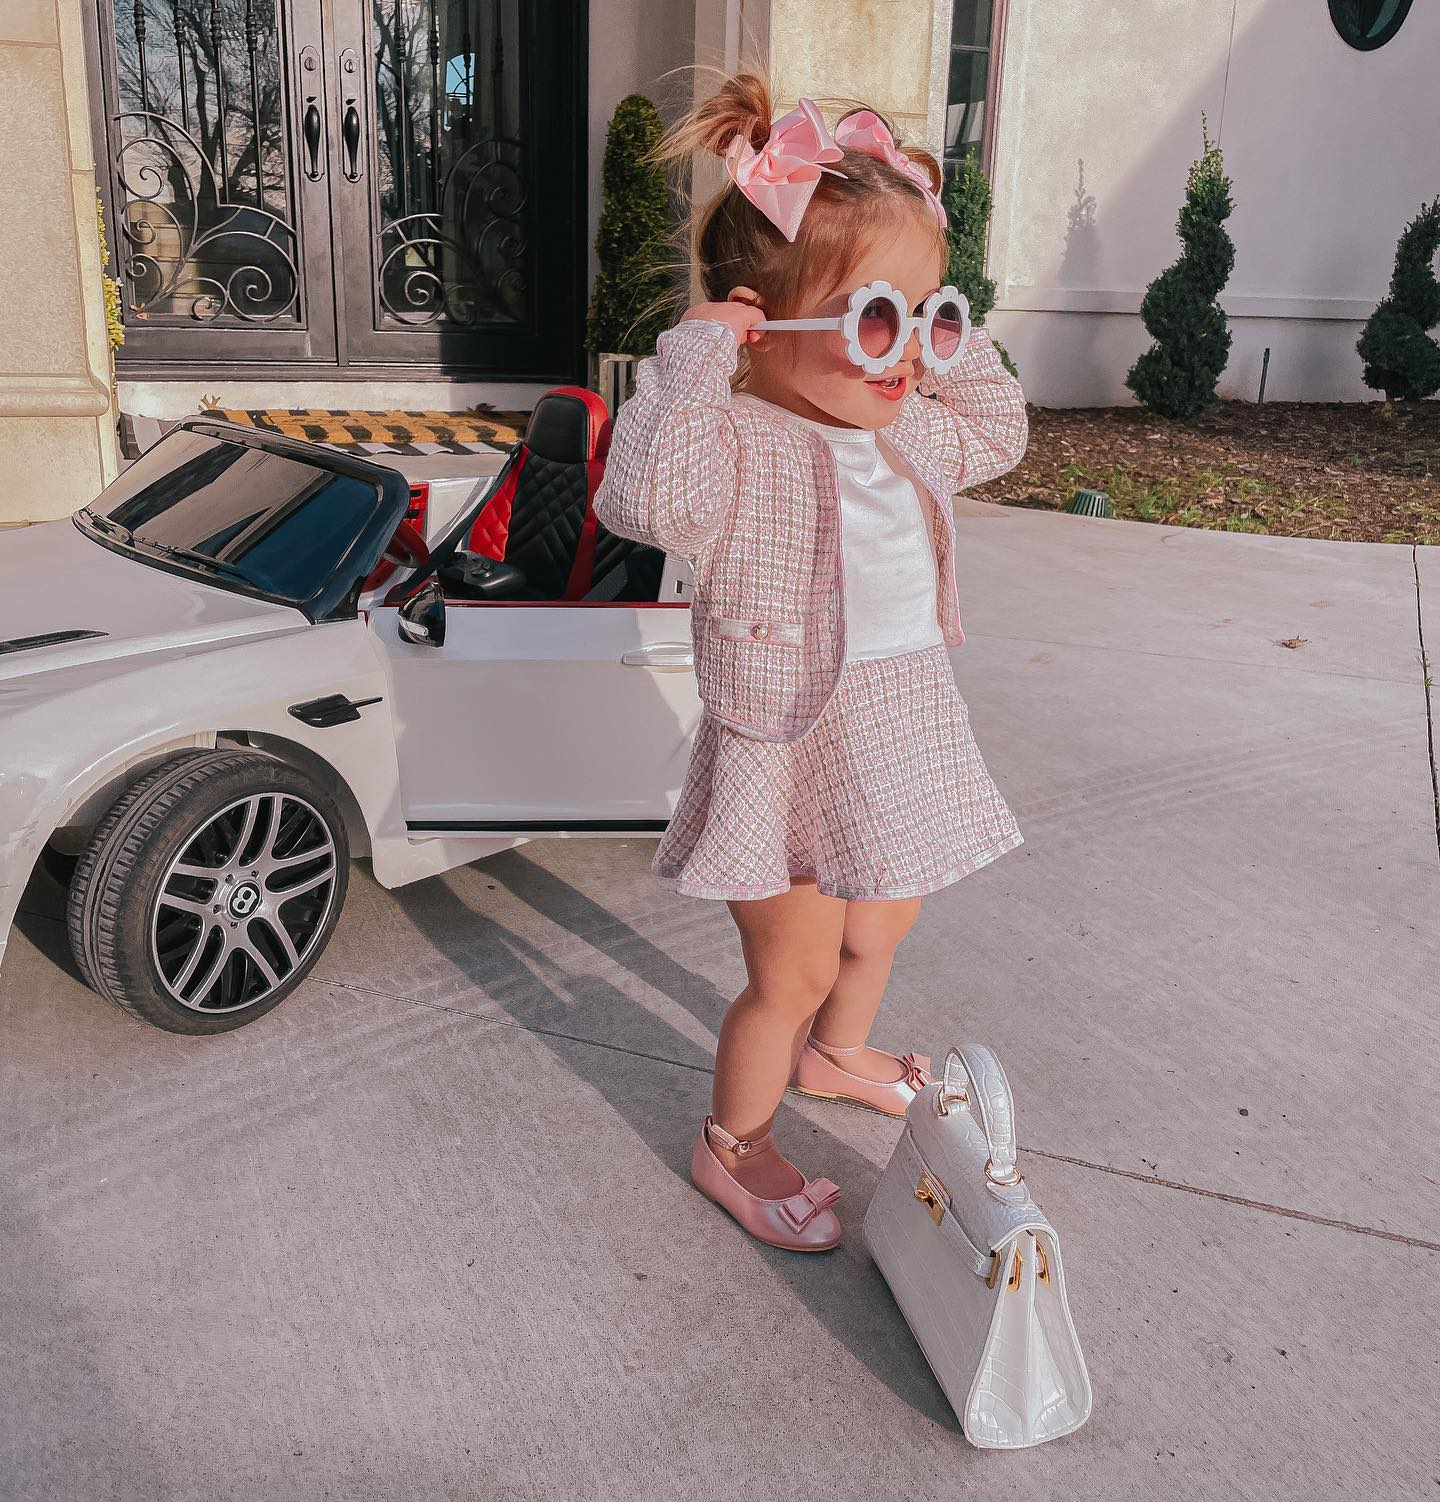 Gemma Gang, Best Toy Cars for Kids, Little Girl Preppy Outfit, Little Girl Sunglasses, Bows for Little Girls, Baby Birkin |Instagram Recap by popular US fashion blog, The Sweetest Thing: image of a little girl standing next to a battery powered Bentley and baby Birkin bag while wearing a pink tweed skirt suit, pink box, white shirt, and white flower frame sunglasses.